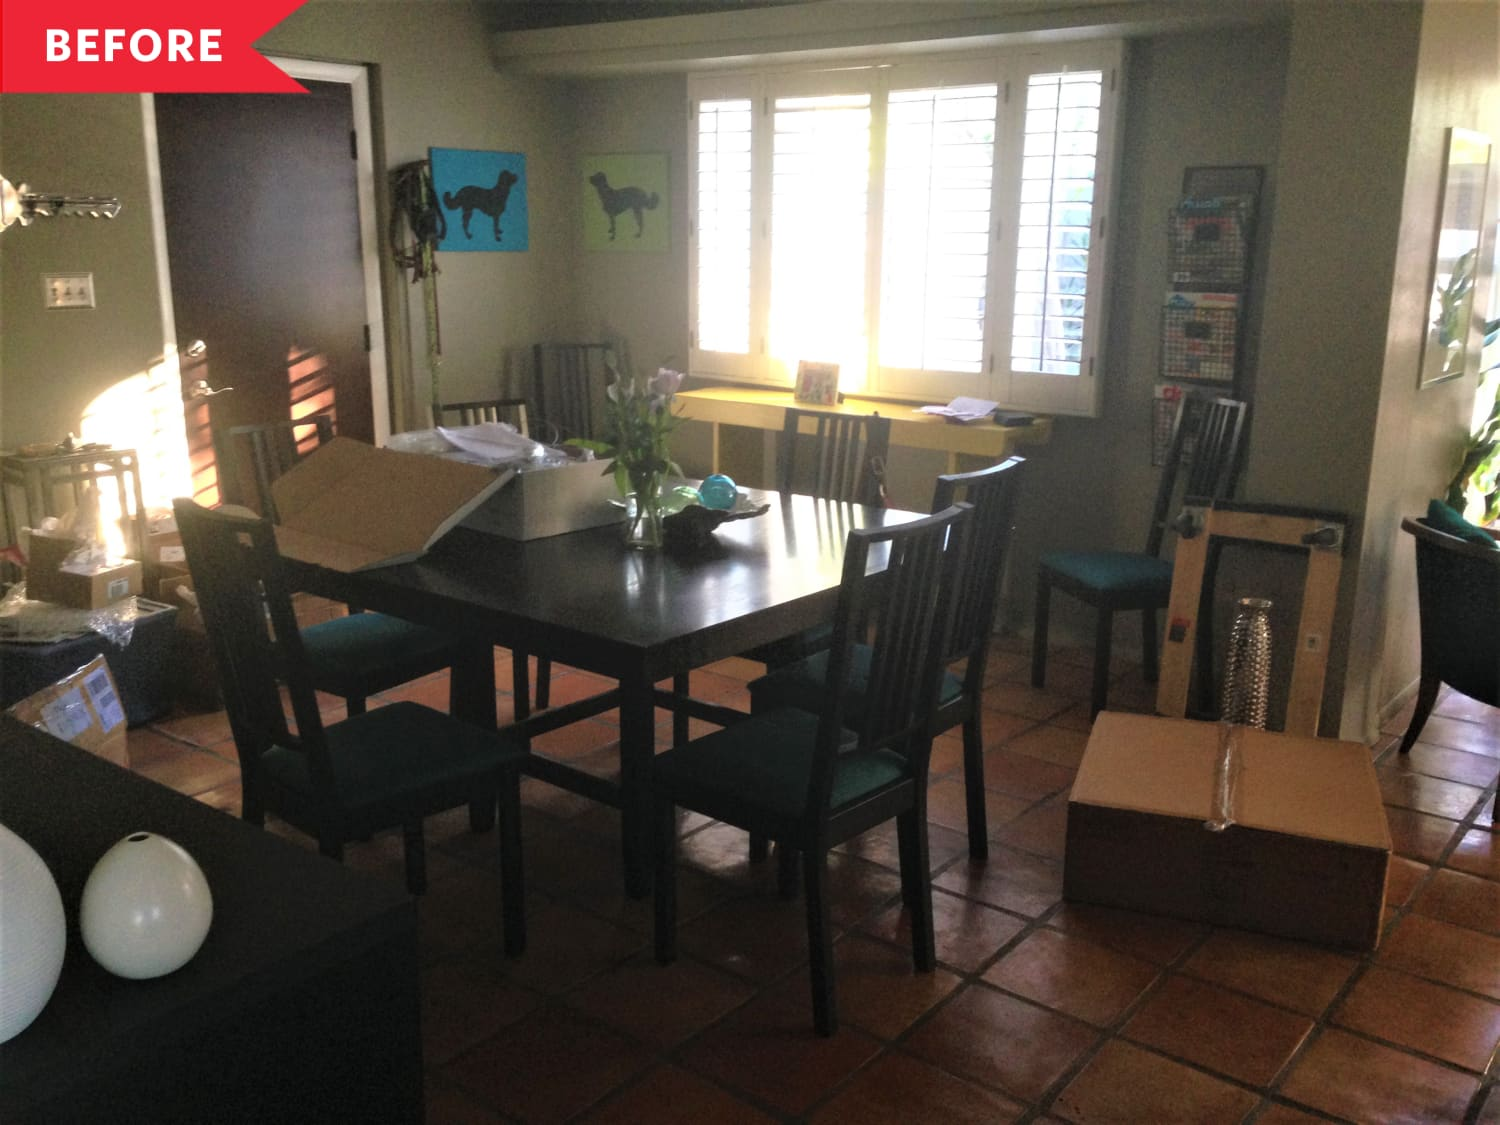 Before & After: A $1,500 Redo Brightened Up This Dining Room and Added Lots of Storage